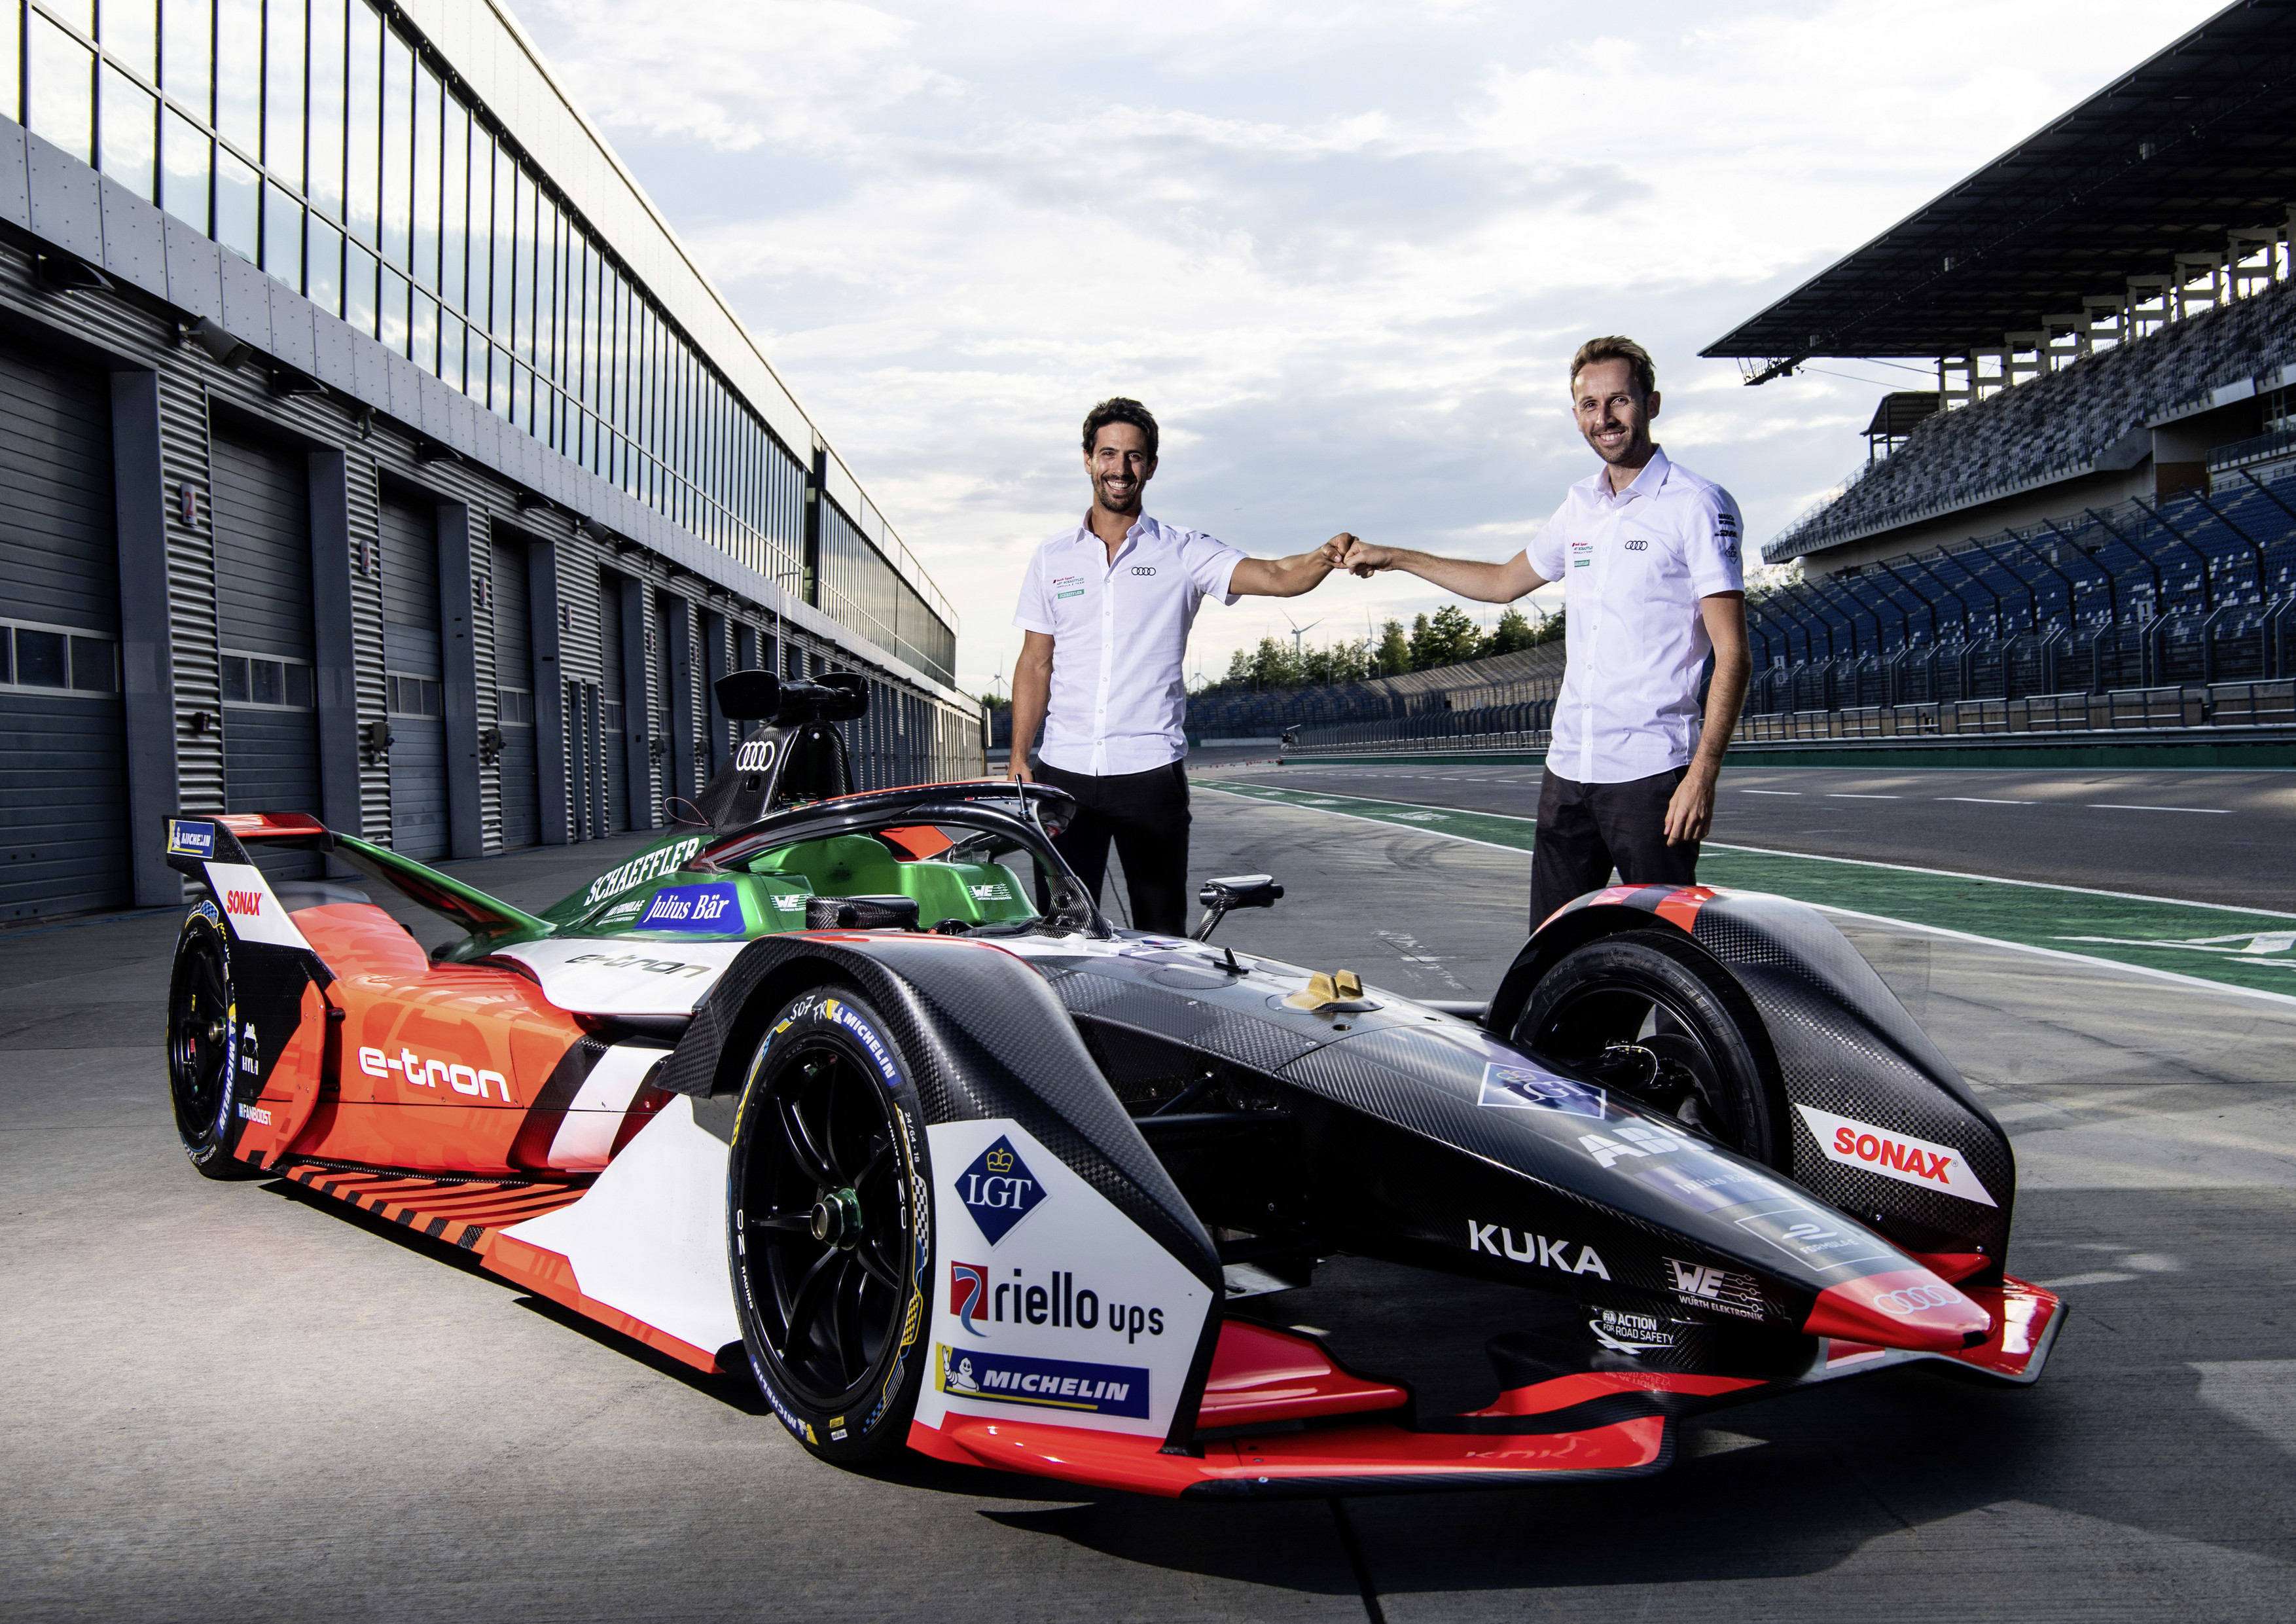 Racing drivers Lucas di Grassi (left) and René Rast give insights into everyday racing life and are eager to answer questions from conference participants. Image source: Würth Elektronik